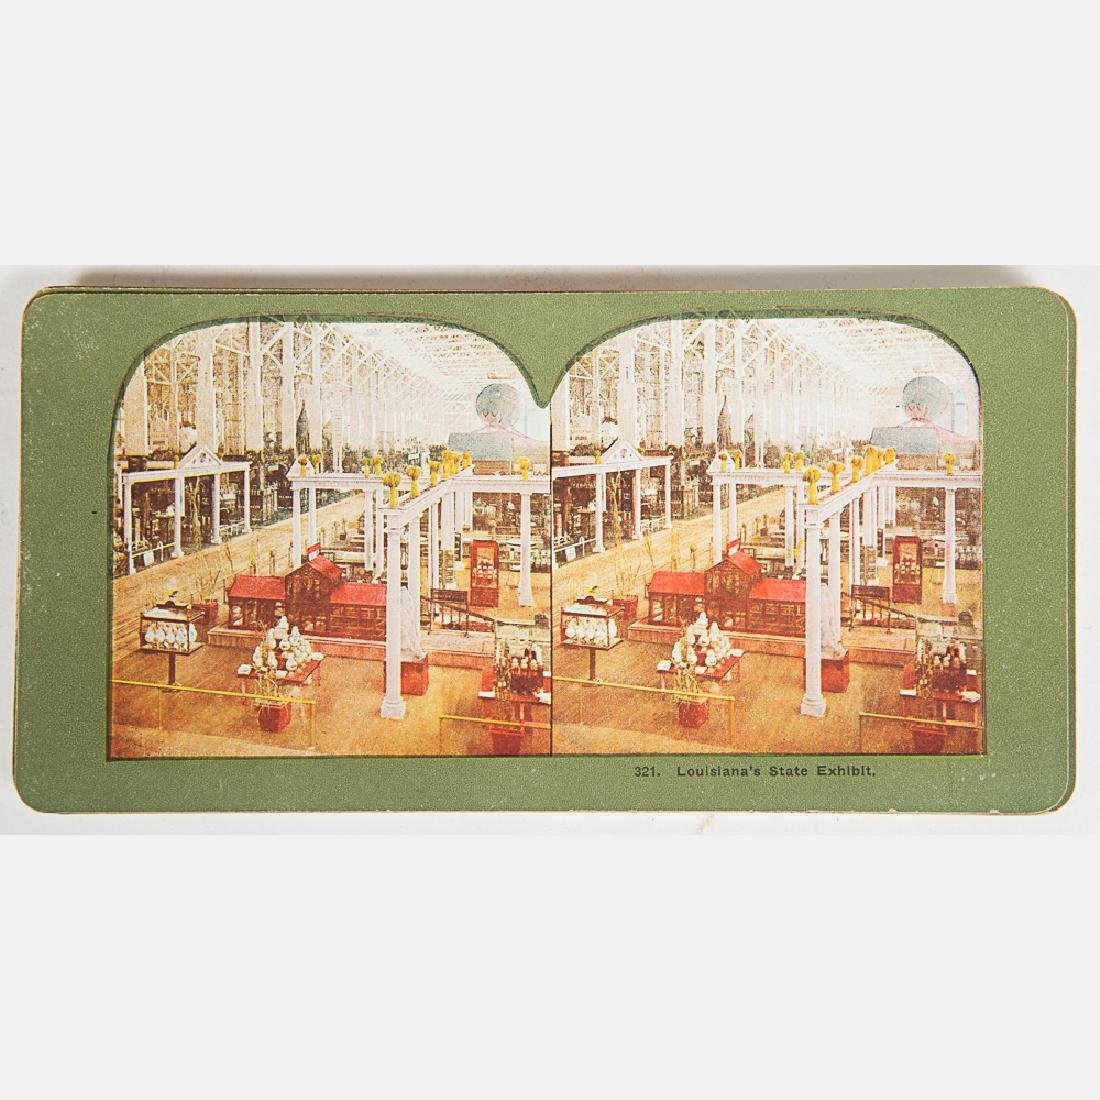 A Set of Stereoscope View Cards of the Louisiana - 4